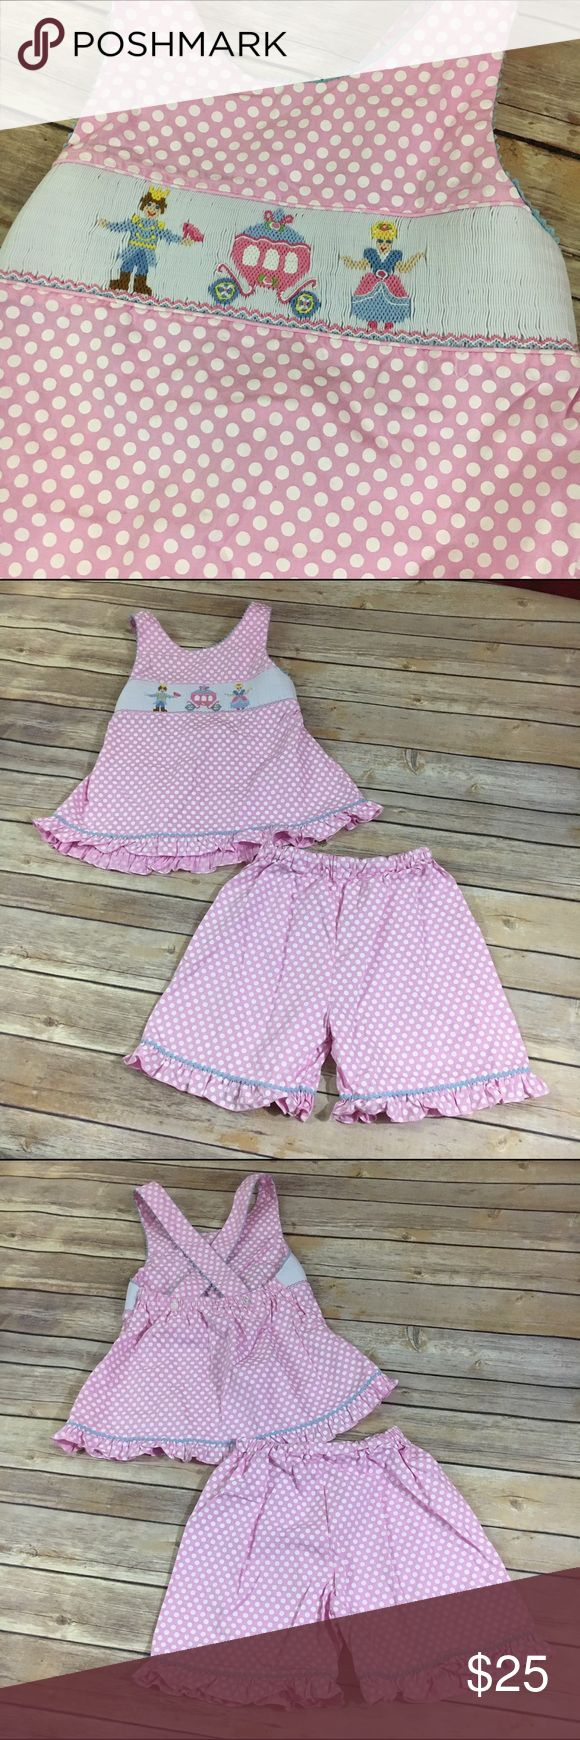 Claire & Charlie Outfit Carriage Prince & Princess Claire & Charlie Outfit Carriage Prince & Princess 6  Super cute criss cross back straps top with elastic in back.  Straps button on.  Smocked in front with a prince, princess & carriage.  Shorts have an elastic waist and ruffles.  Very good used condition.  #polkadot #polkadots #prince #princess #carriage #smocked #smocking #pink #white #outfit #set #ruffles Claire & Charlie Matching Sets